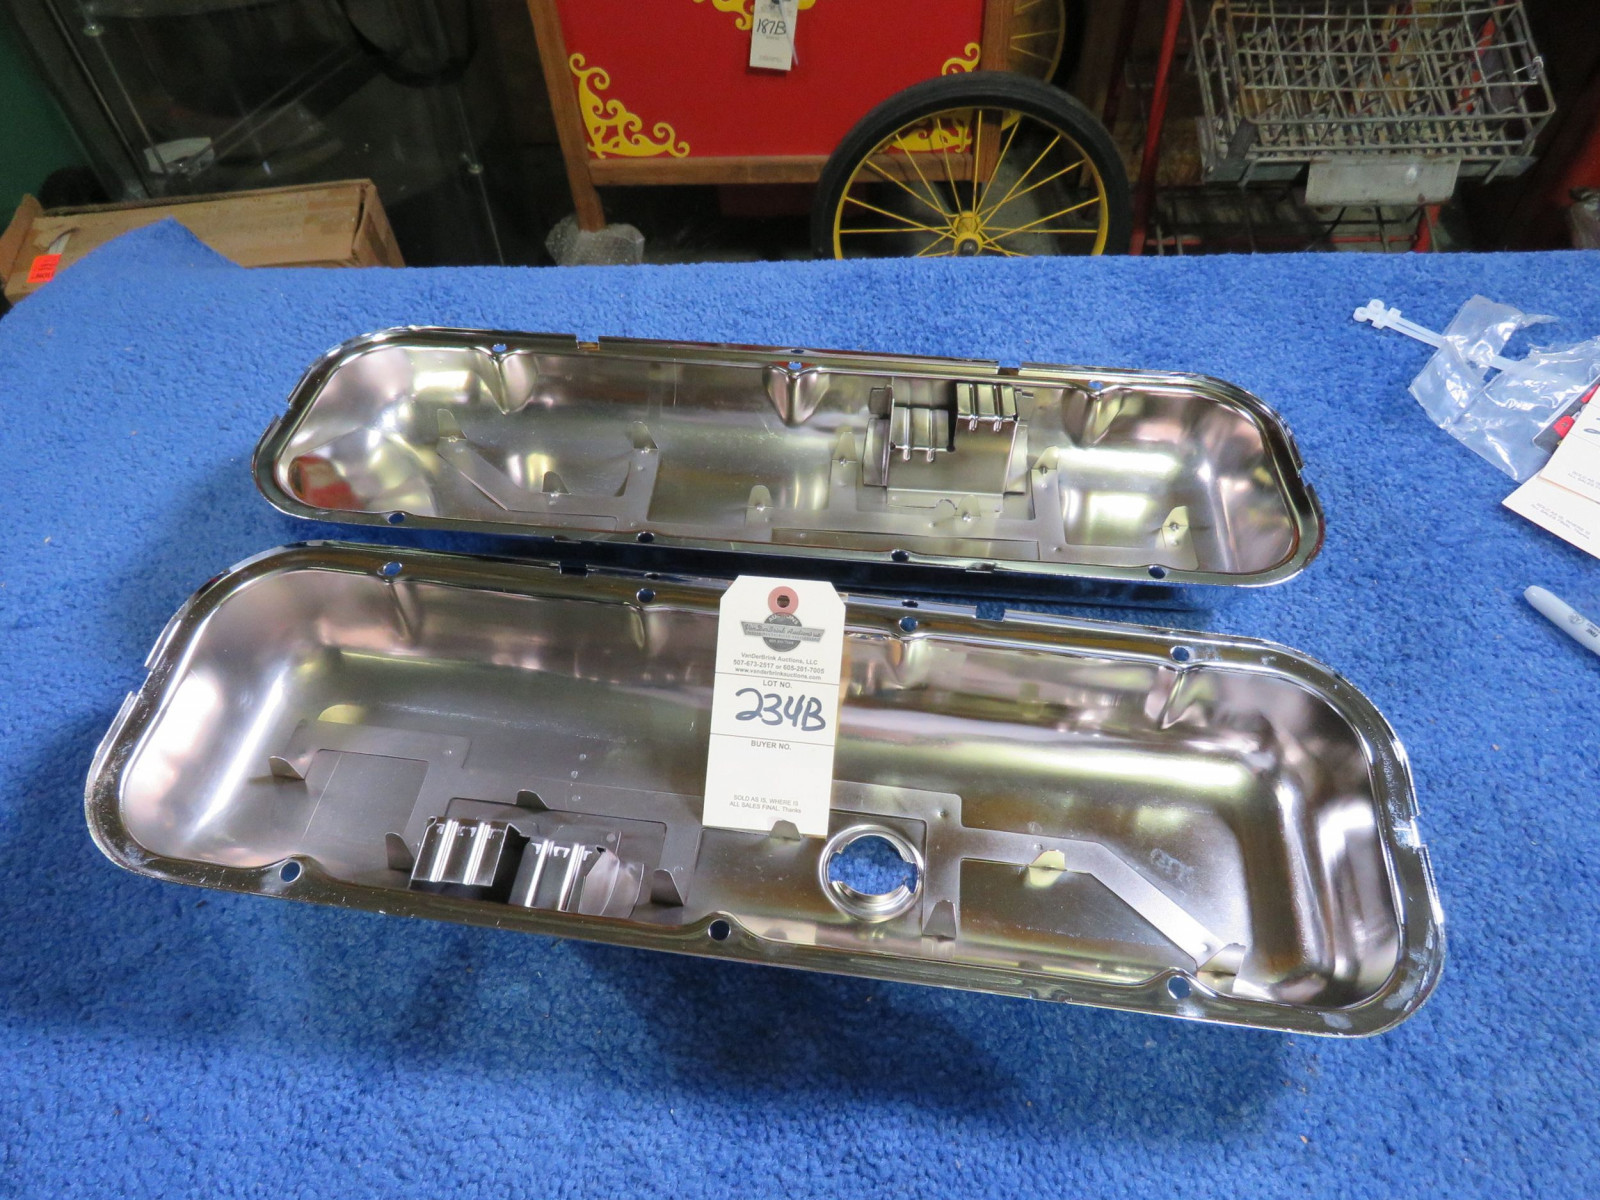 Chevrolet Big block Valve Covers with Drip Rails - Image 1